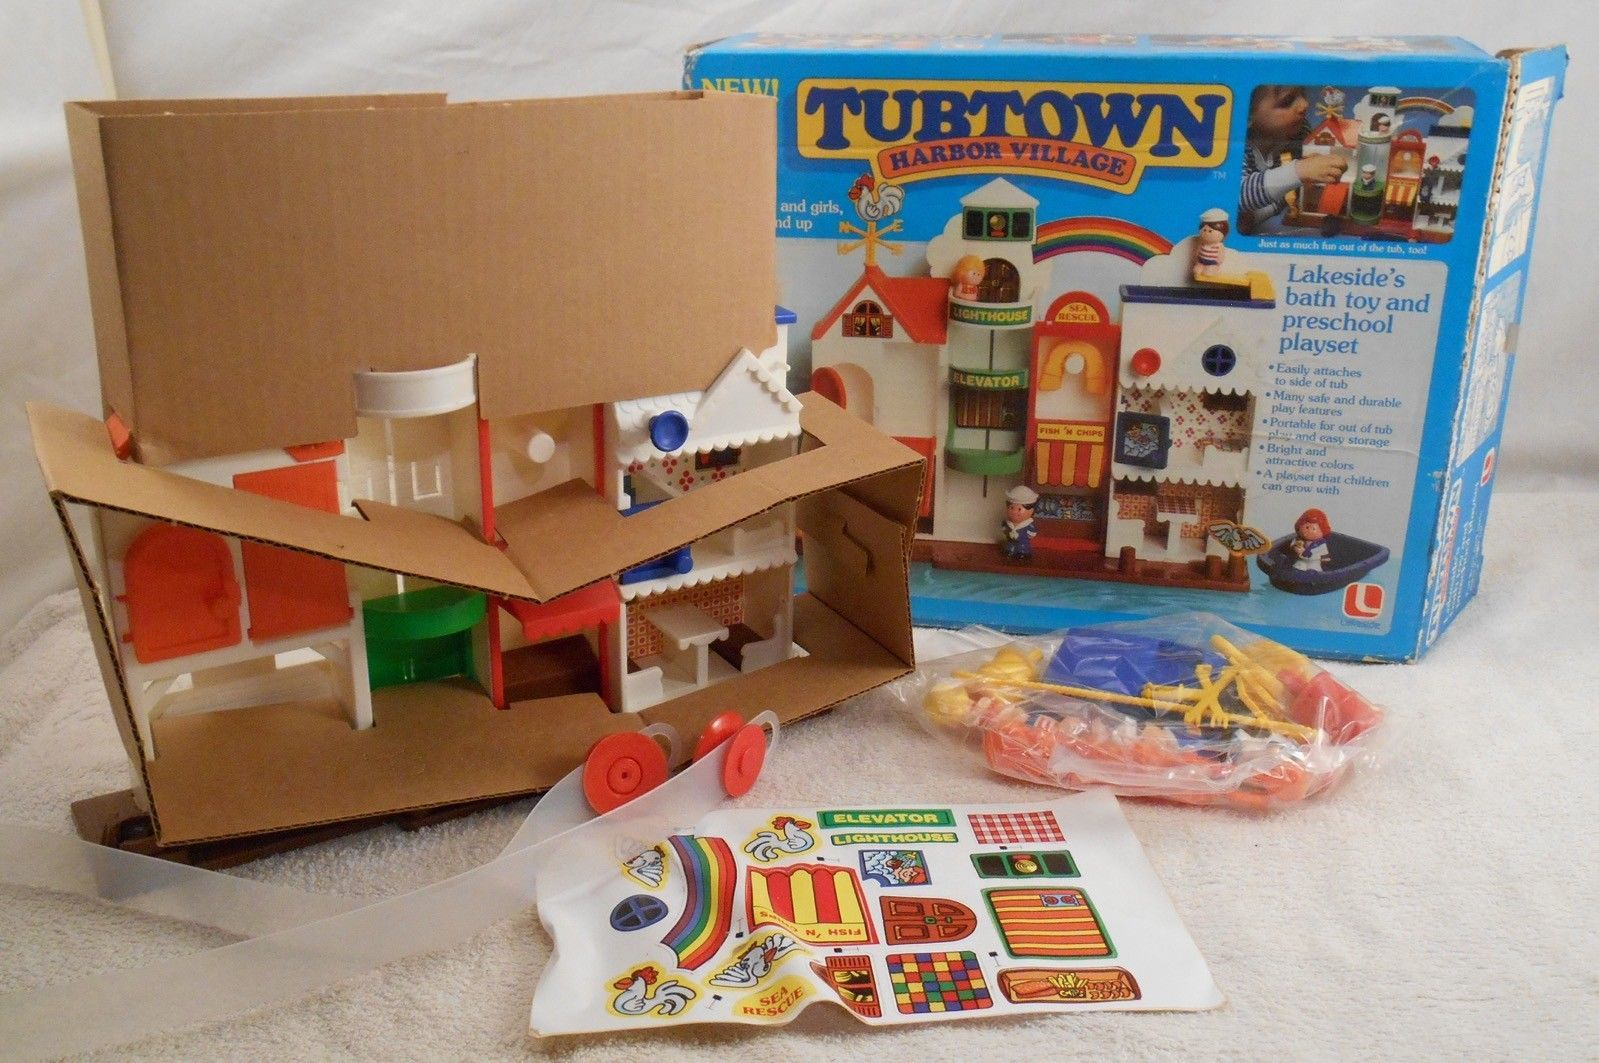 New Tubtown Harbor Village Rare 1982 Vintage and 50 similar items